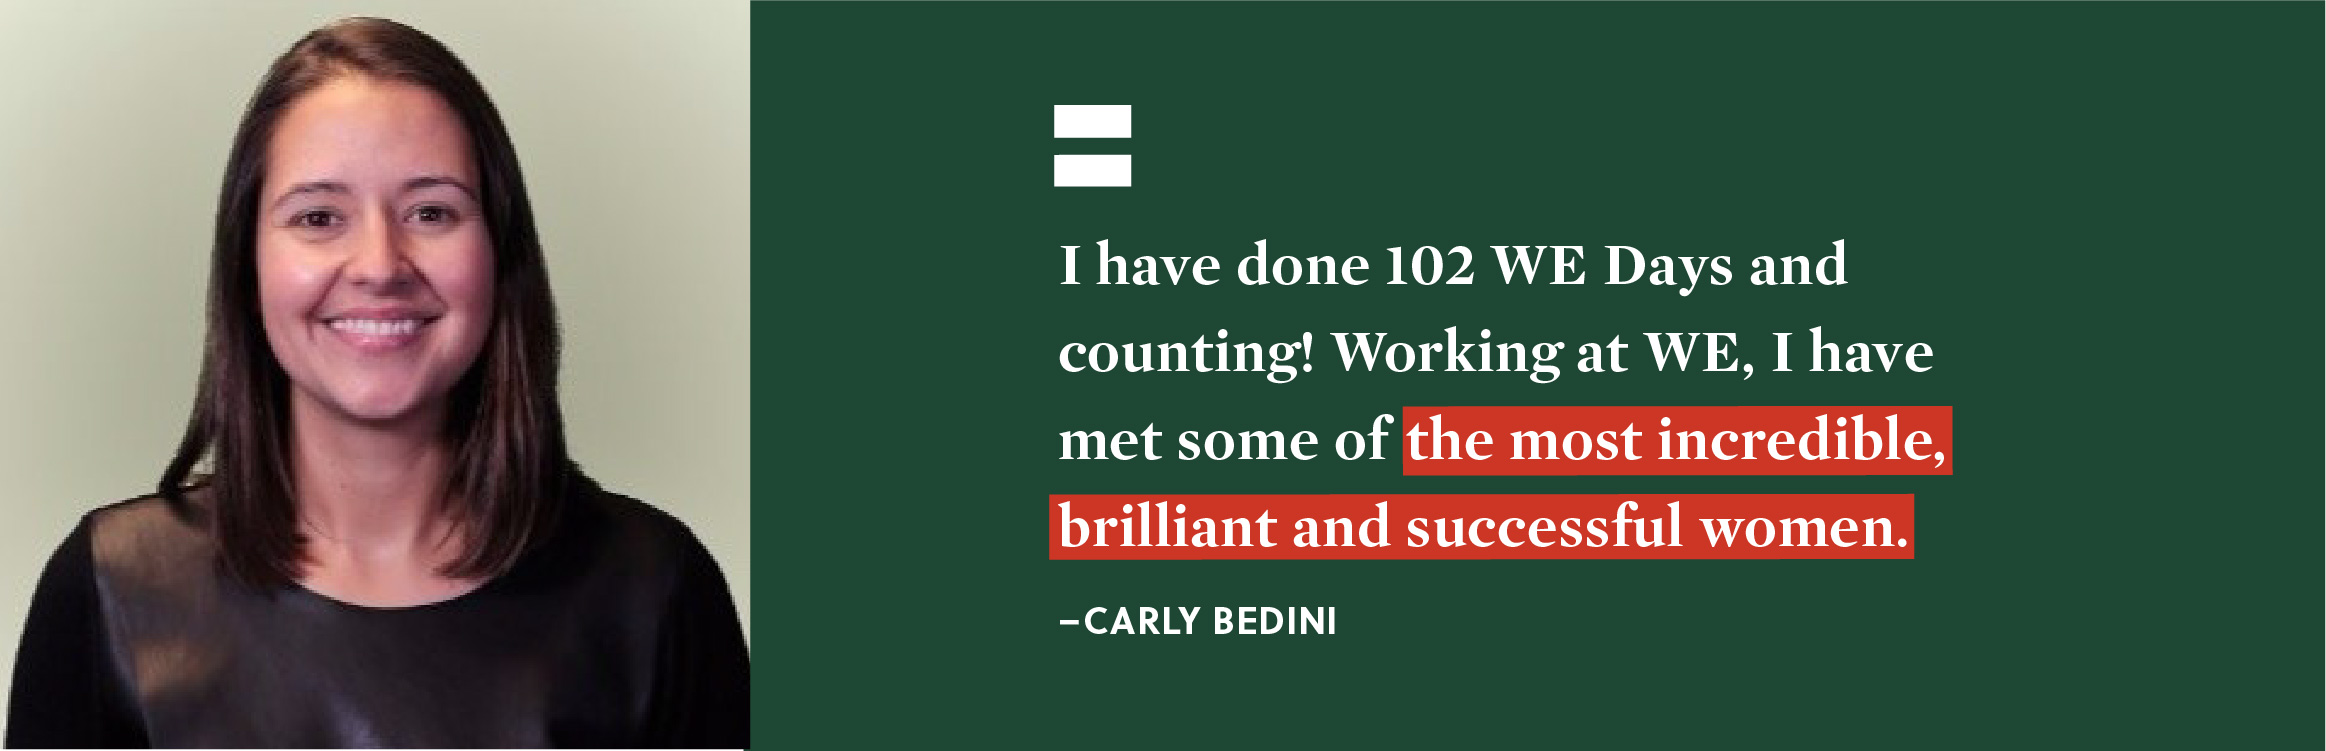 """I have done 102 WE Days and counting! Working at WE I have met some of the most incredible, brilliant and successful women."" - Carly Bedini."